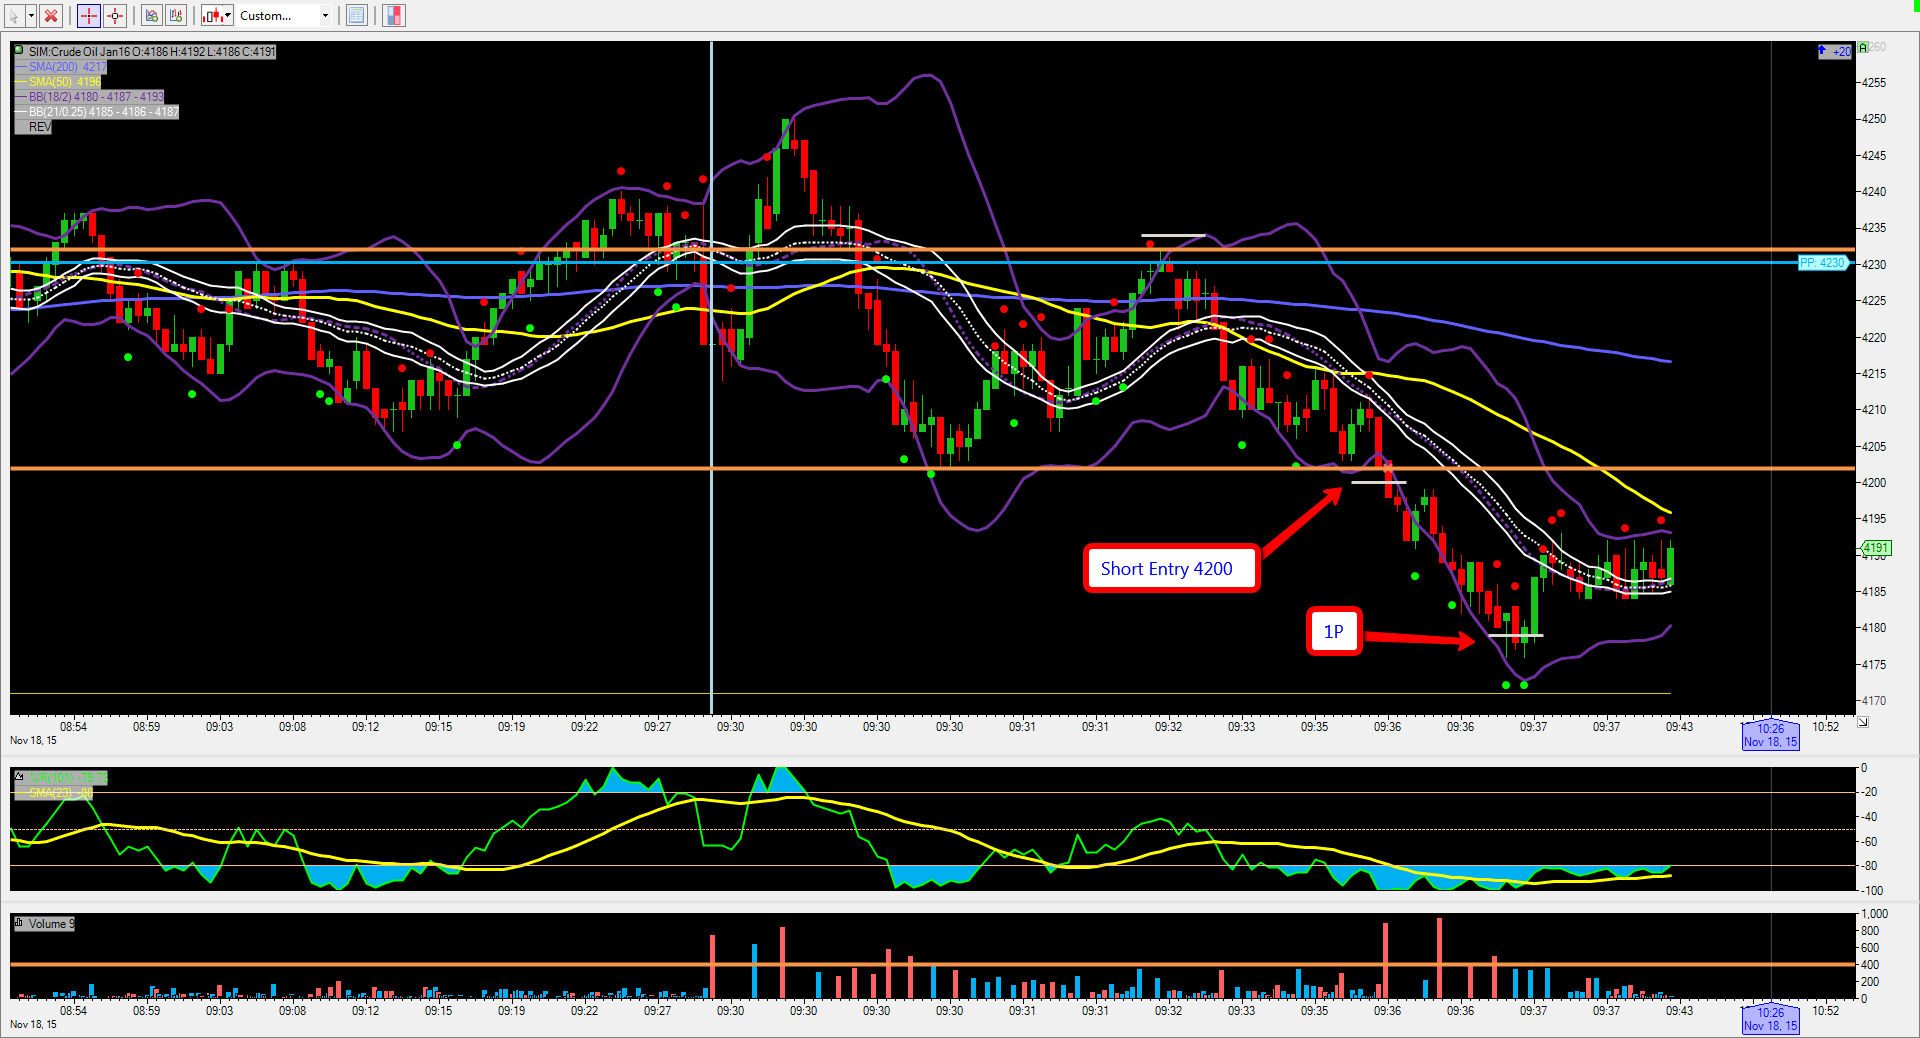 TST FTP Futures Day Trading Crude Oil